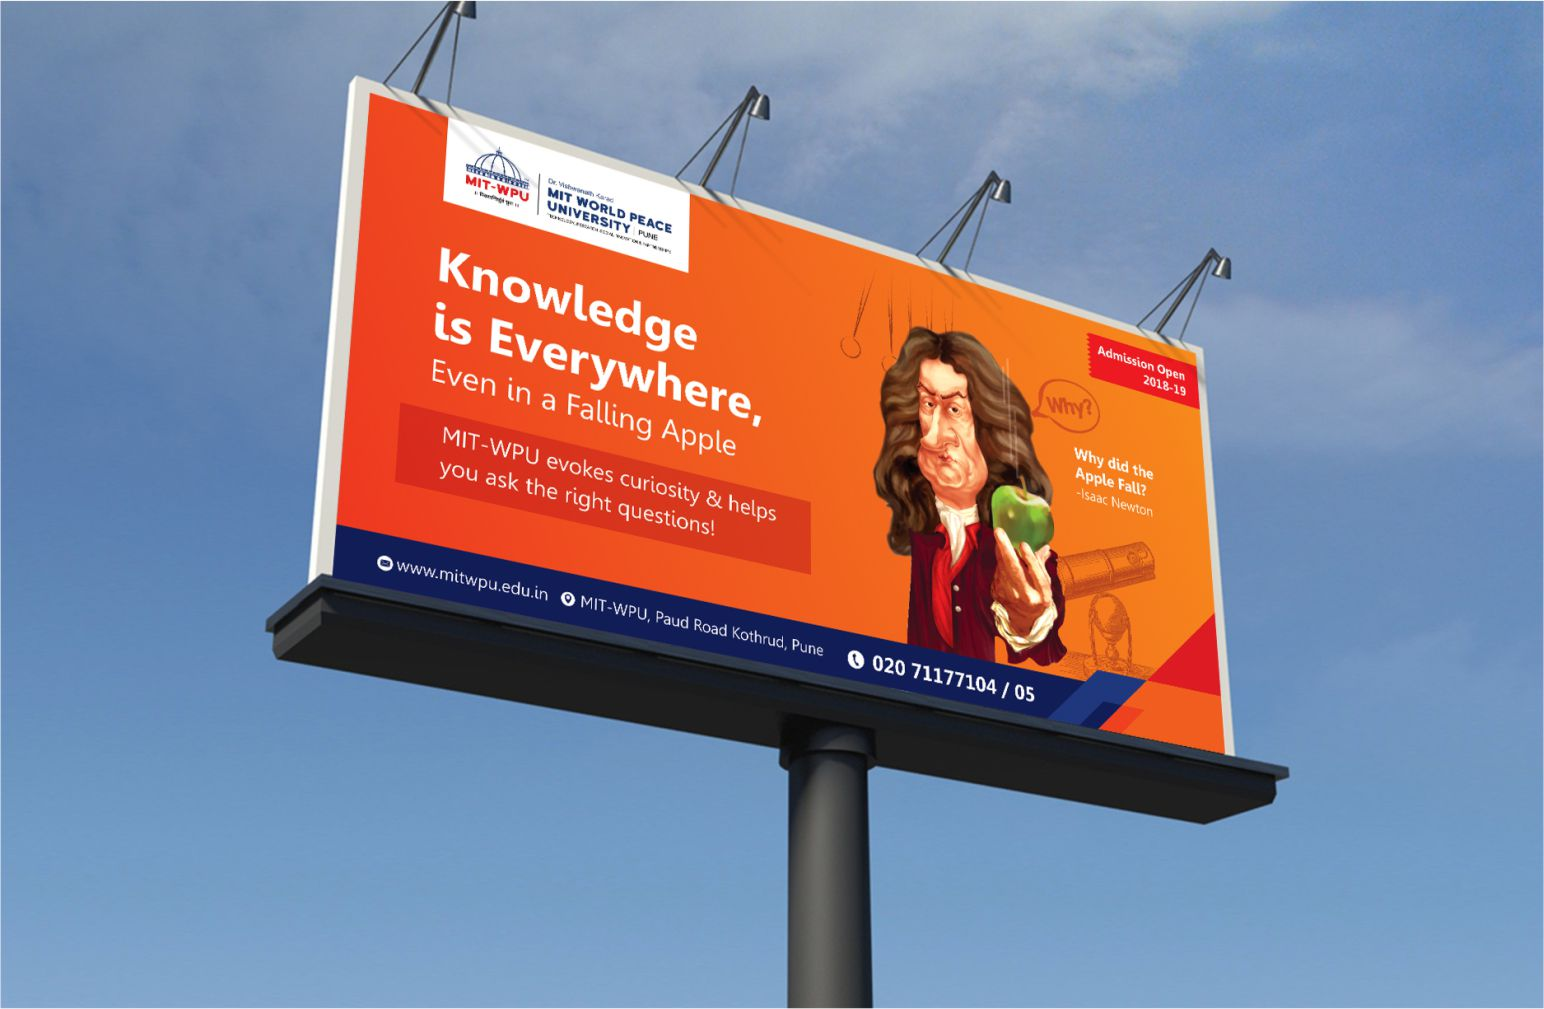 onezeroeight-mit-casestudy-outdoor-campaign-knowledge-is-everywhere-isaac-newton